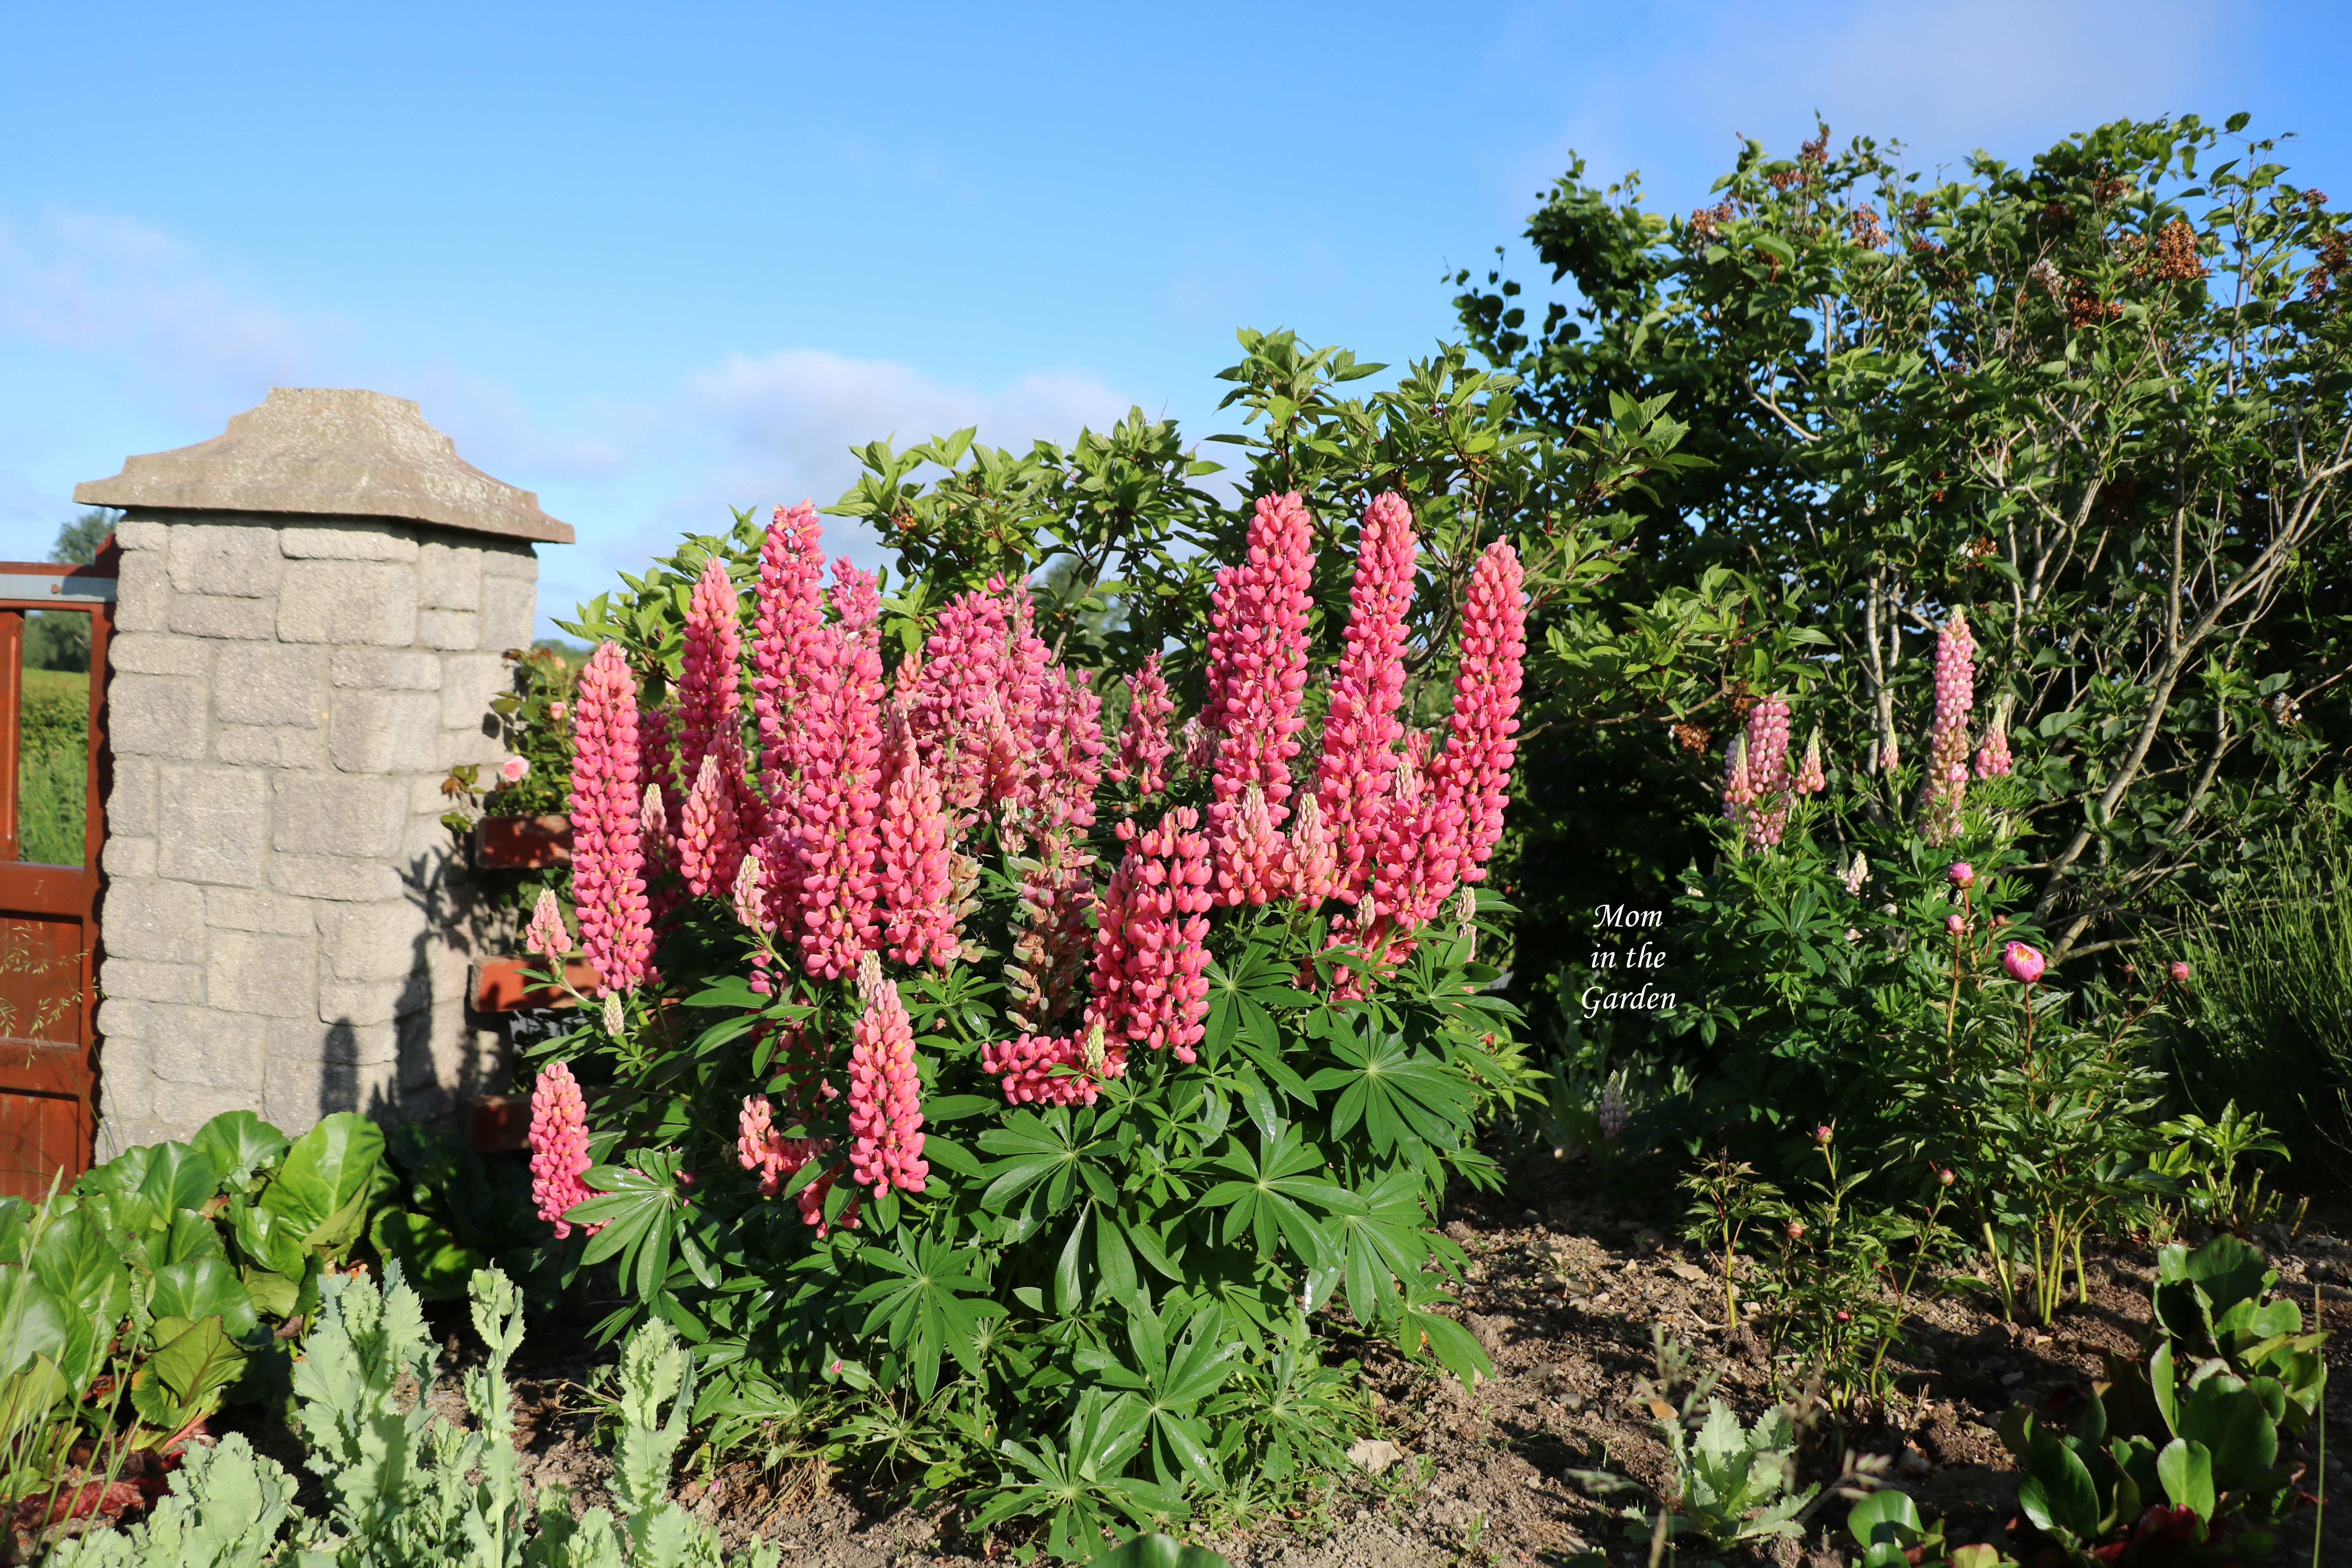 Full pink lupine plant early June